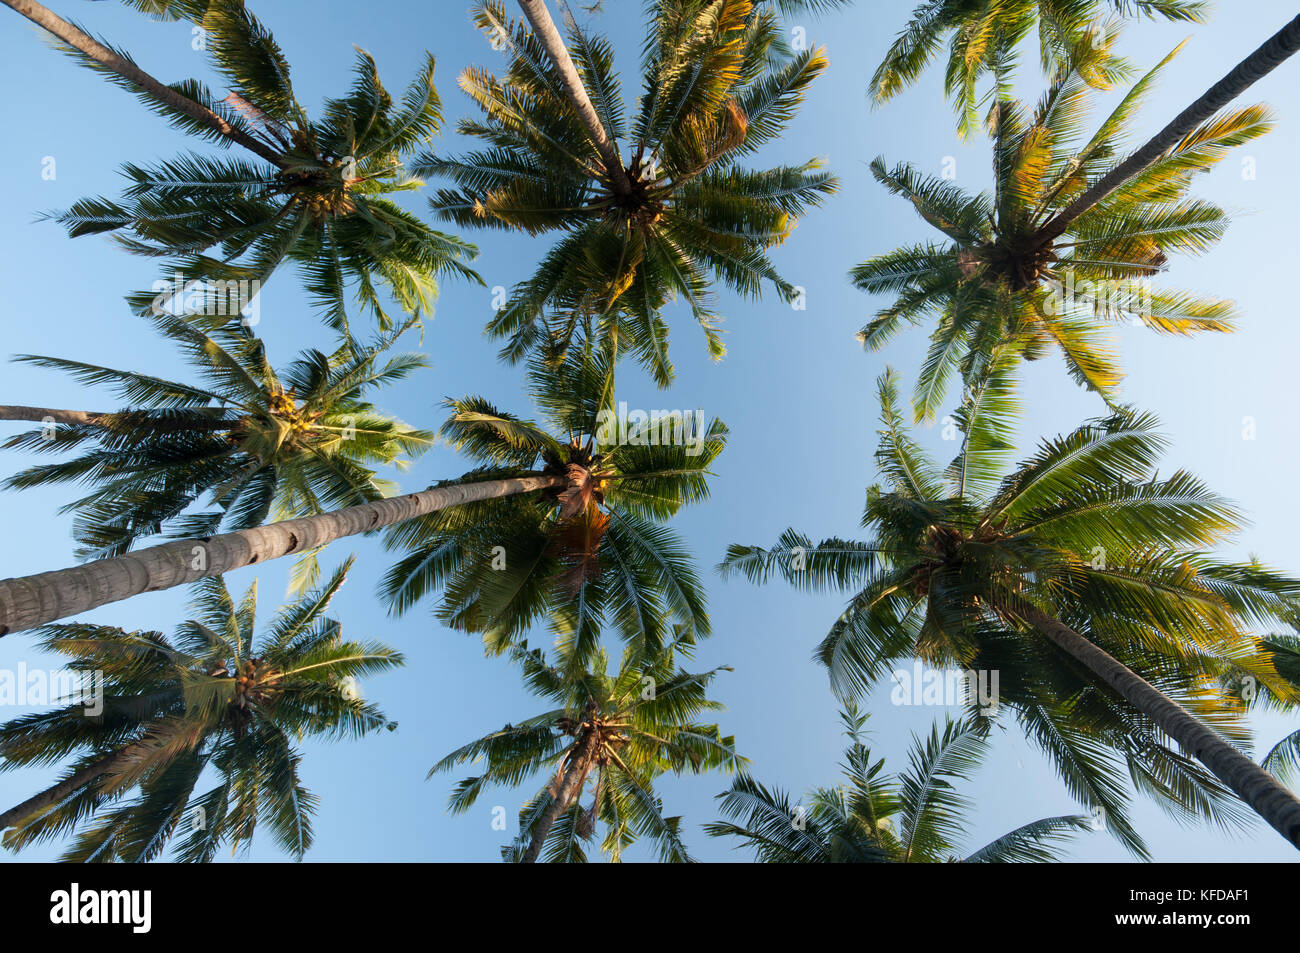 Image of Palm trees taken on Gili Air Island, Lombok, Indonesia - Stock Image